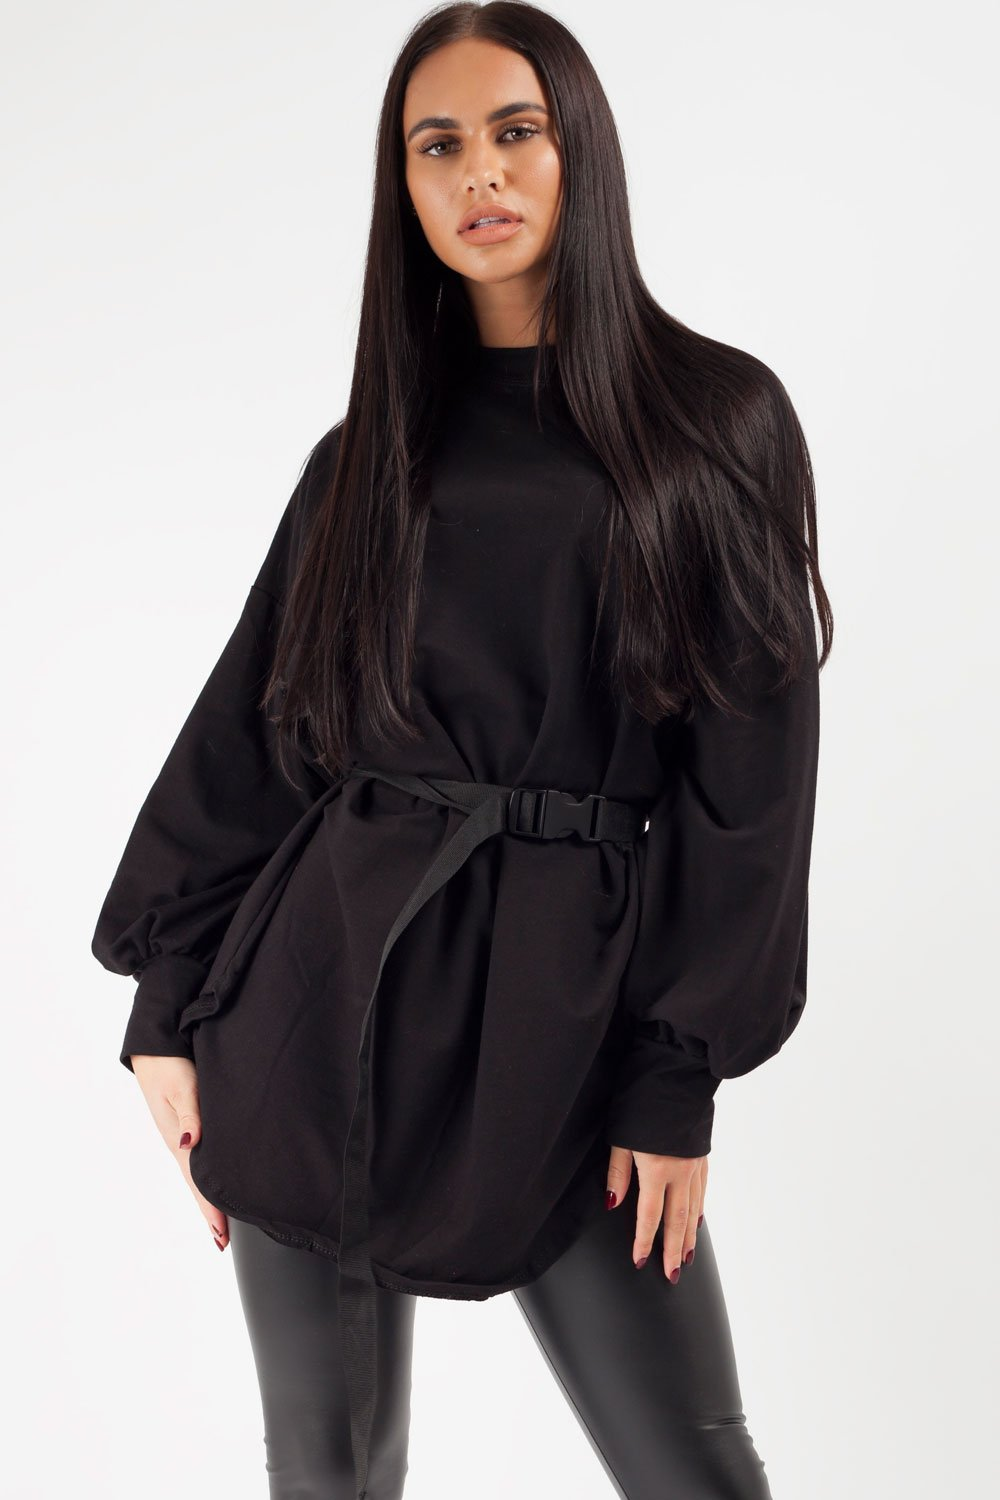 black oversized sweatshirt with utility belt